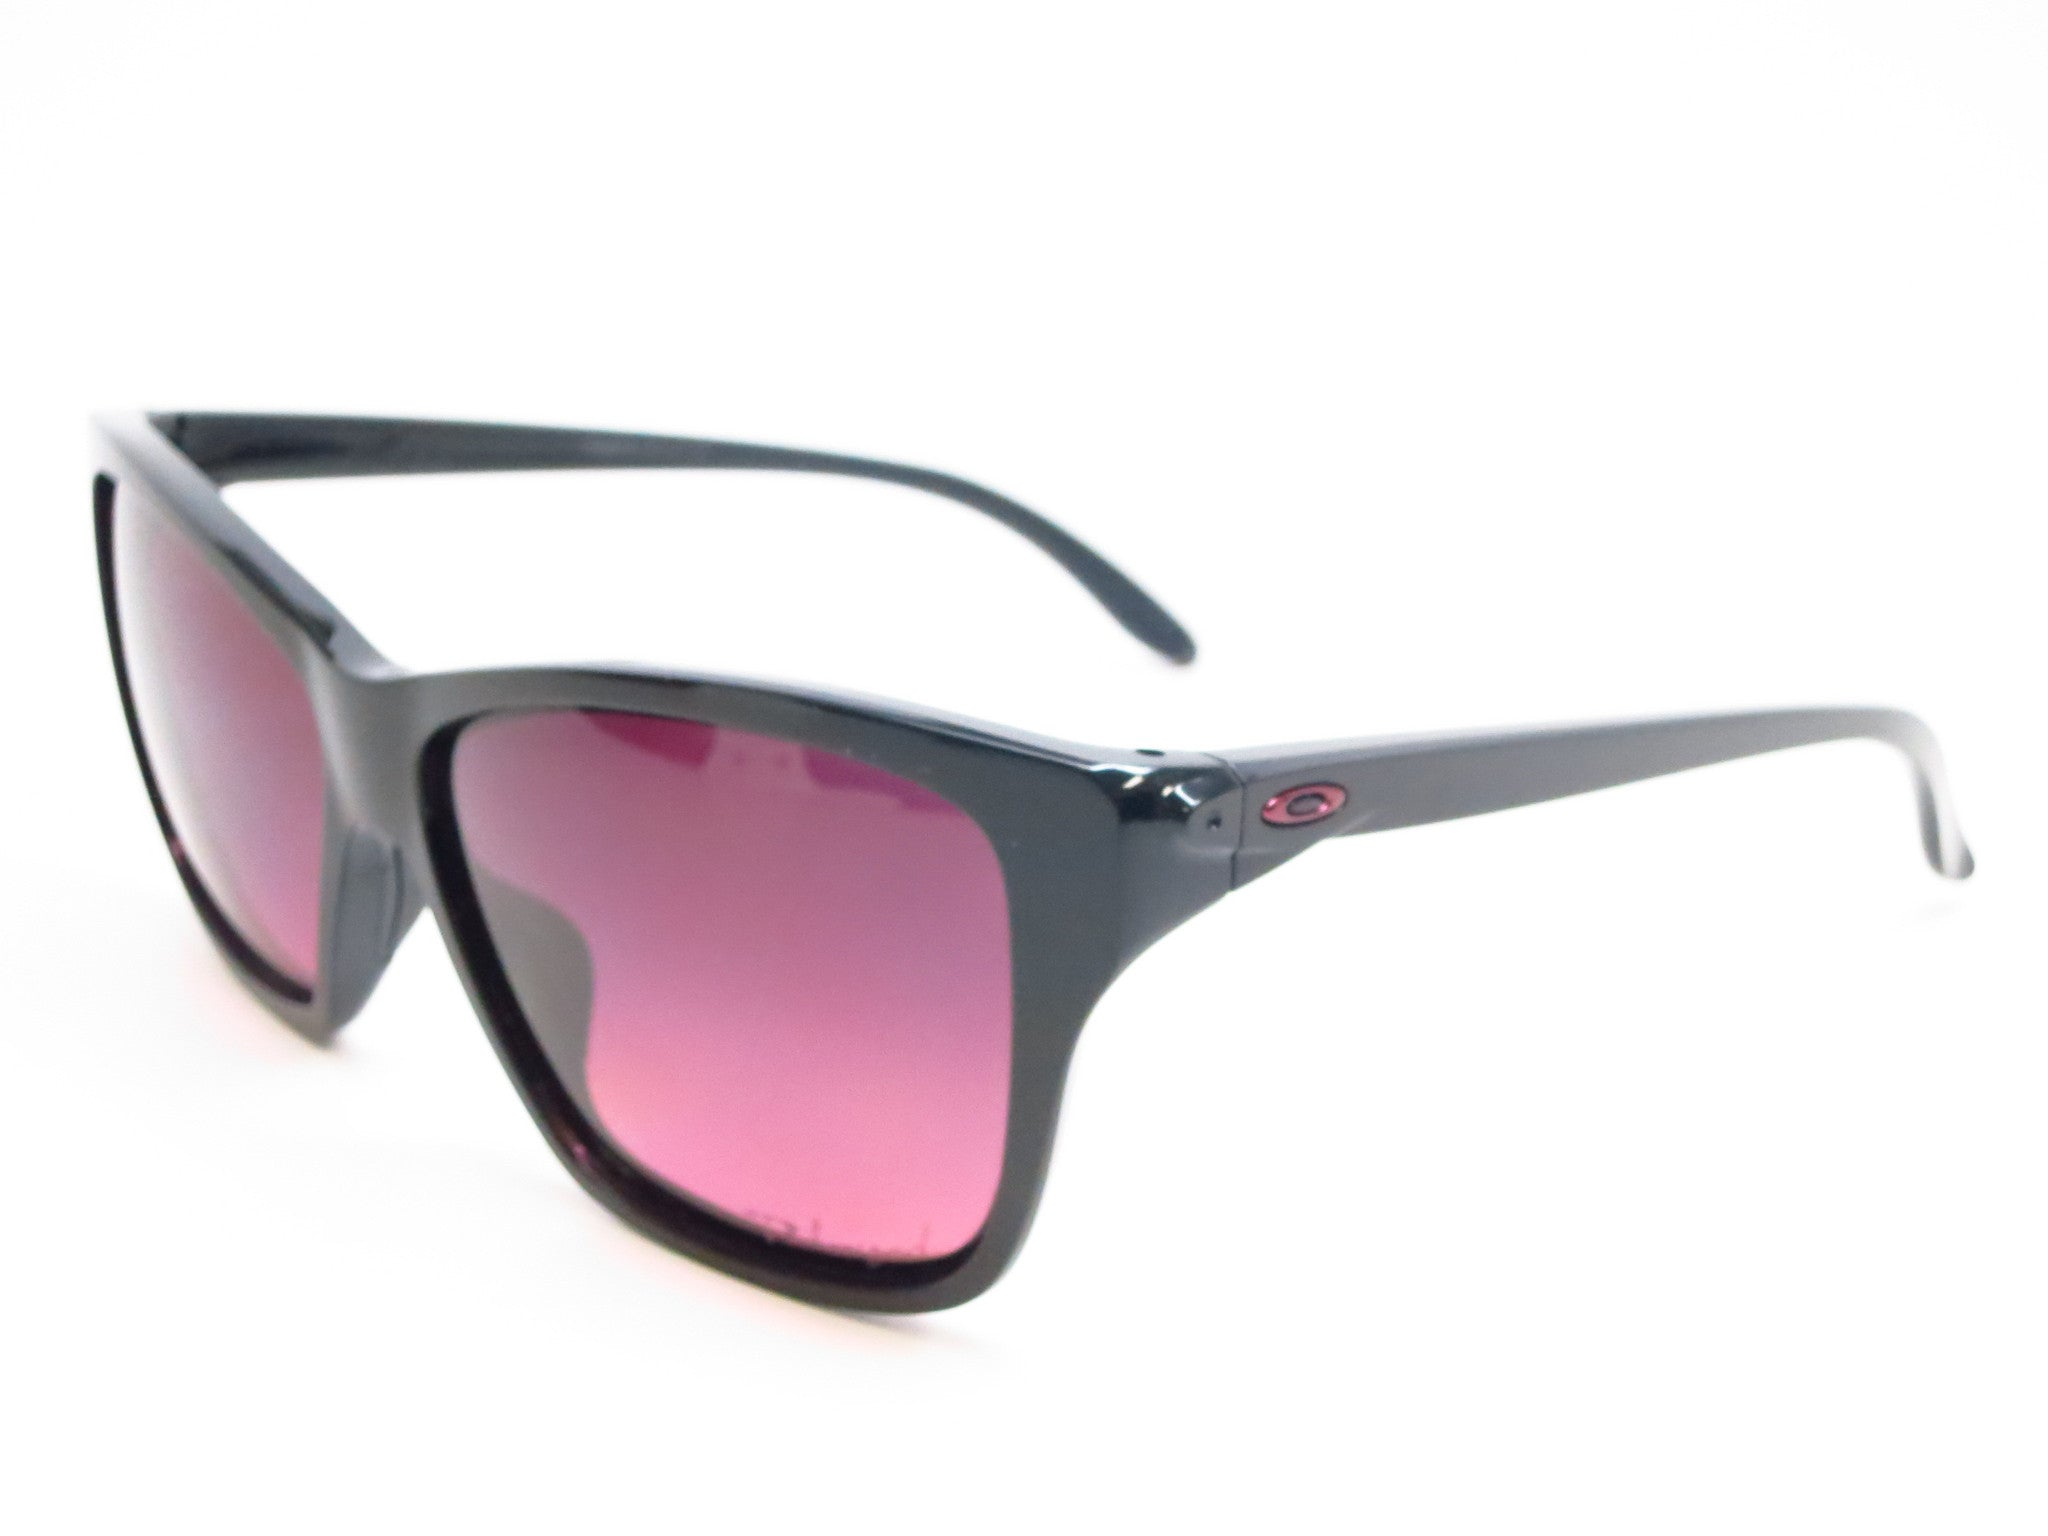 54a8c2d442 Heritage Malta Sunglasses Outlet Sale Day Oakley One « xvRwq6pA